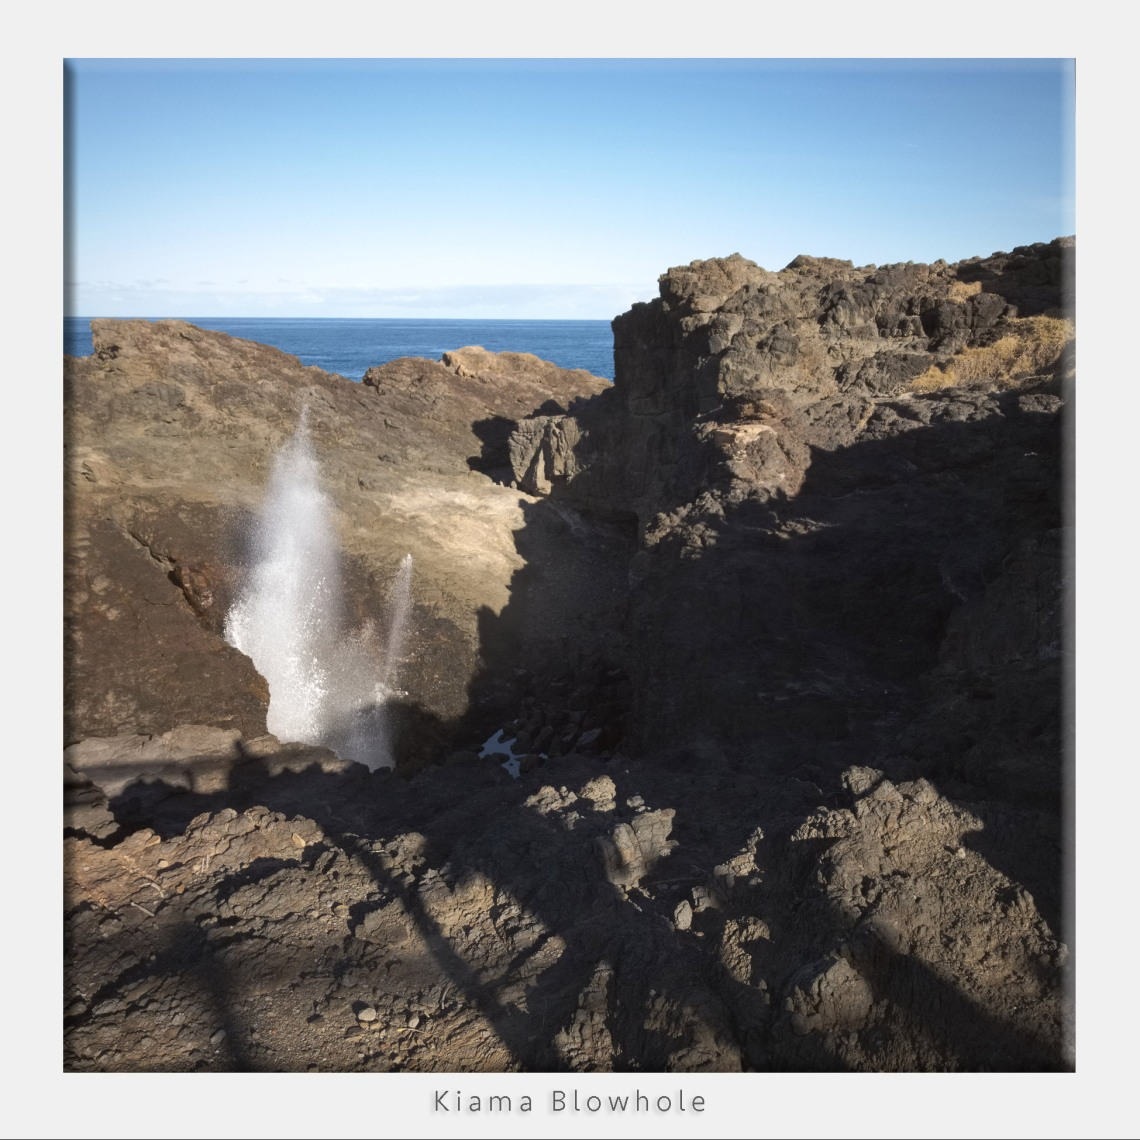 Kiama Blow Hole, testing the DNG photo quality iPad Pro